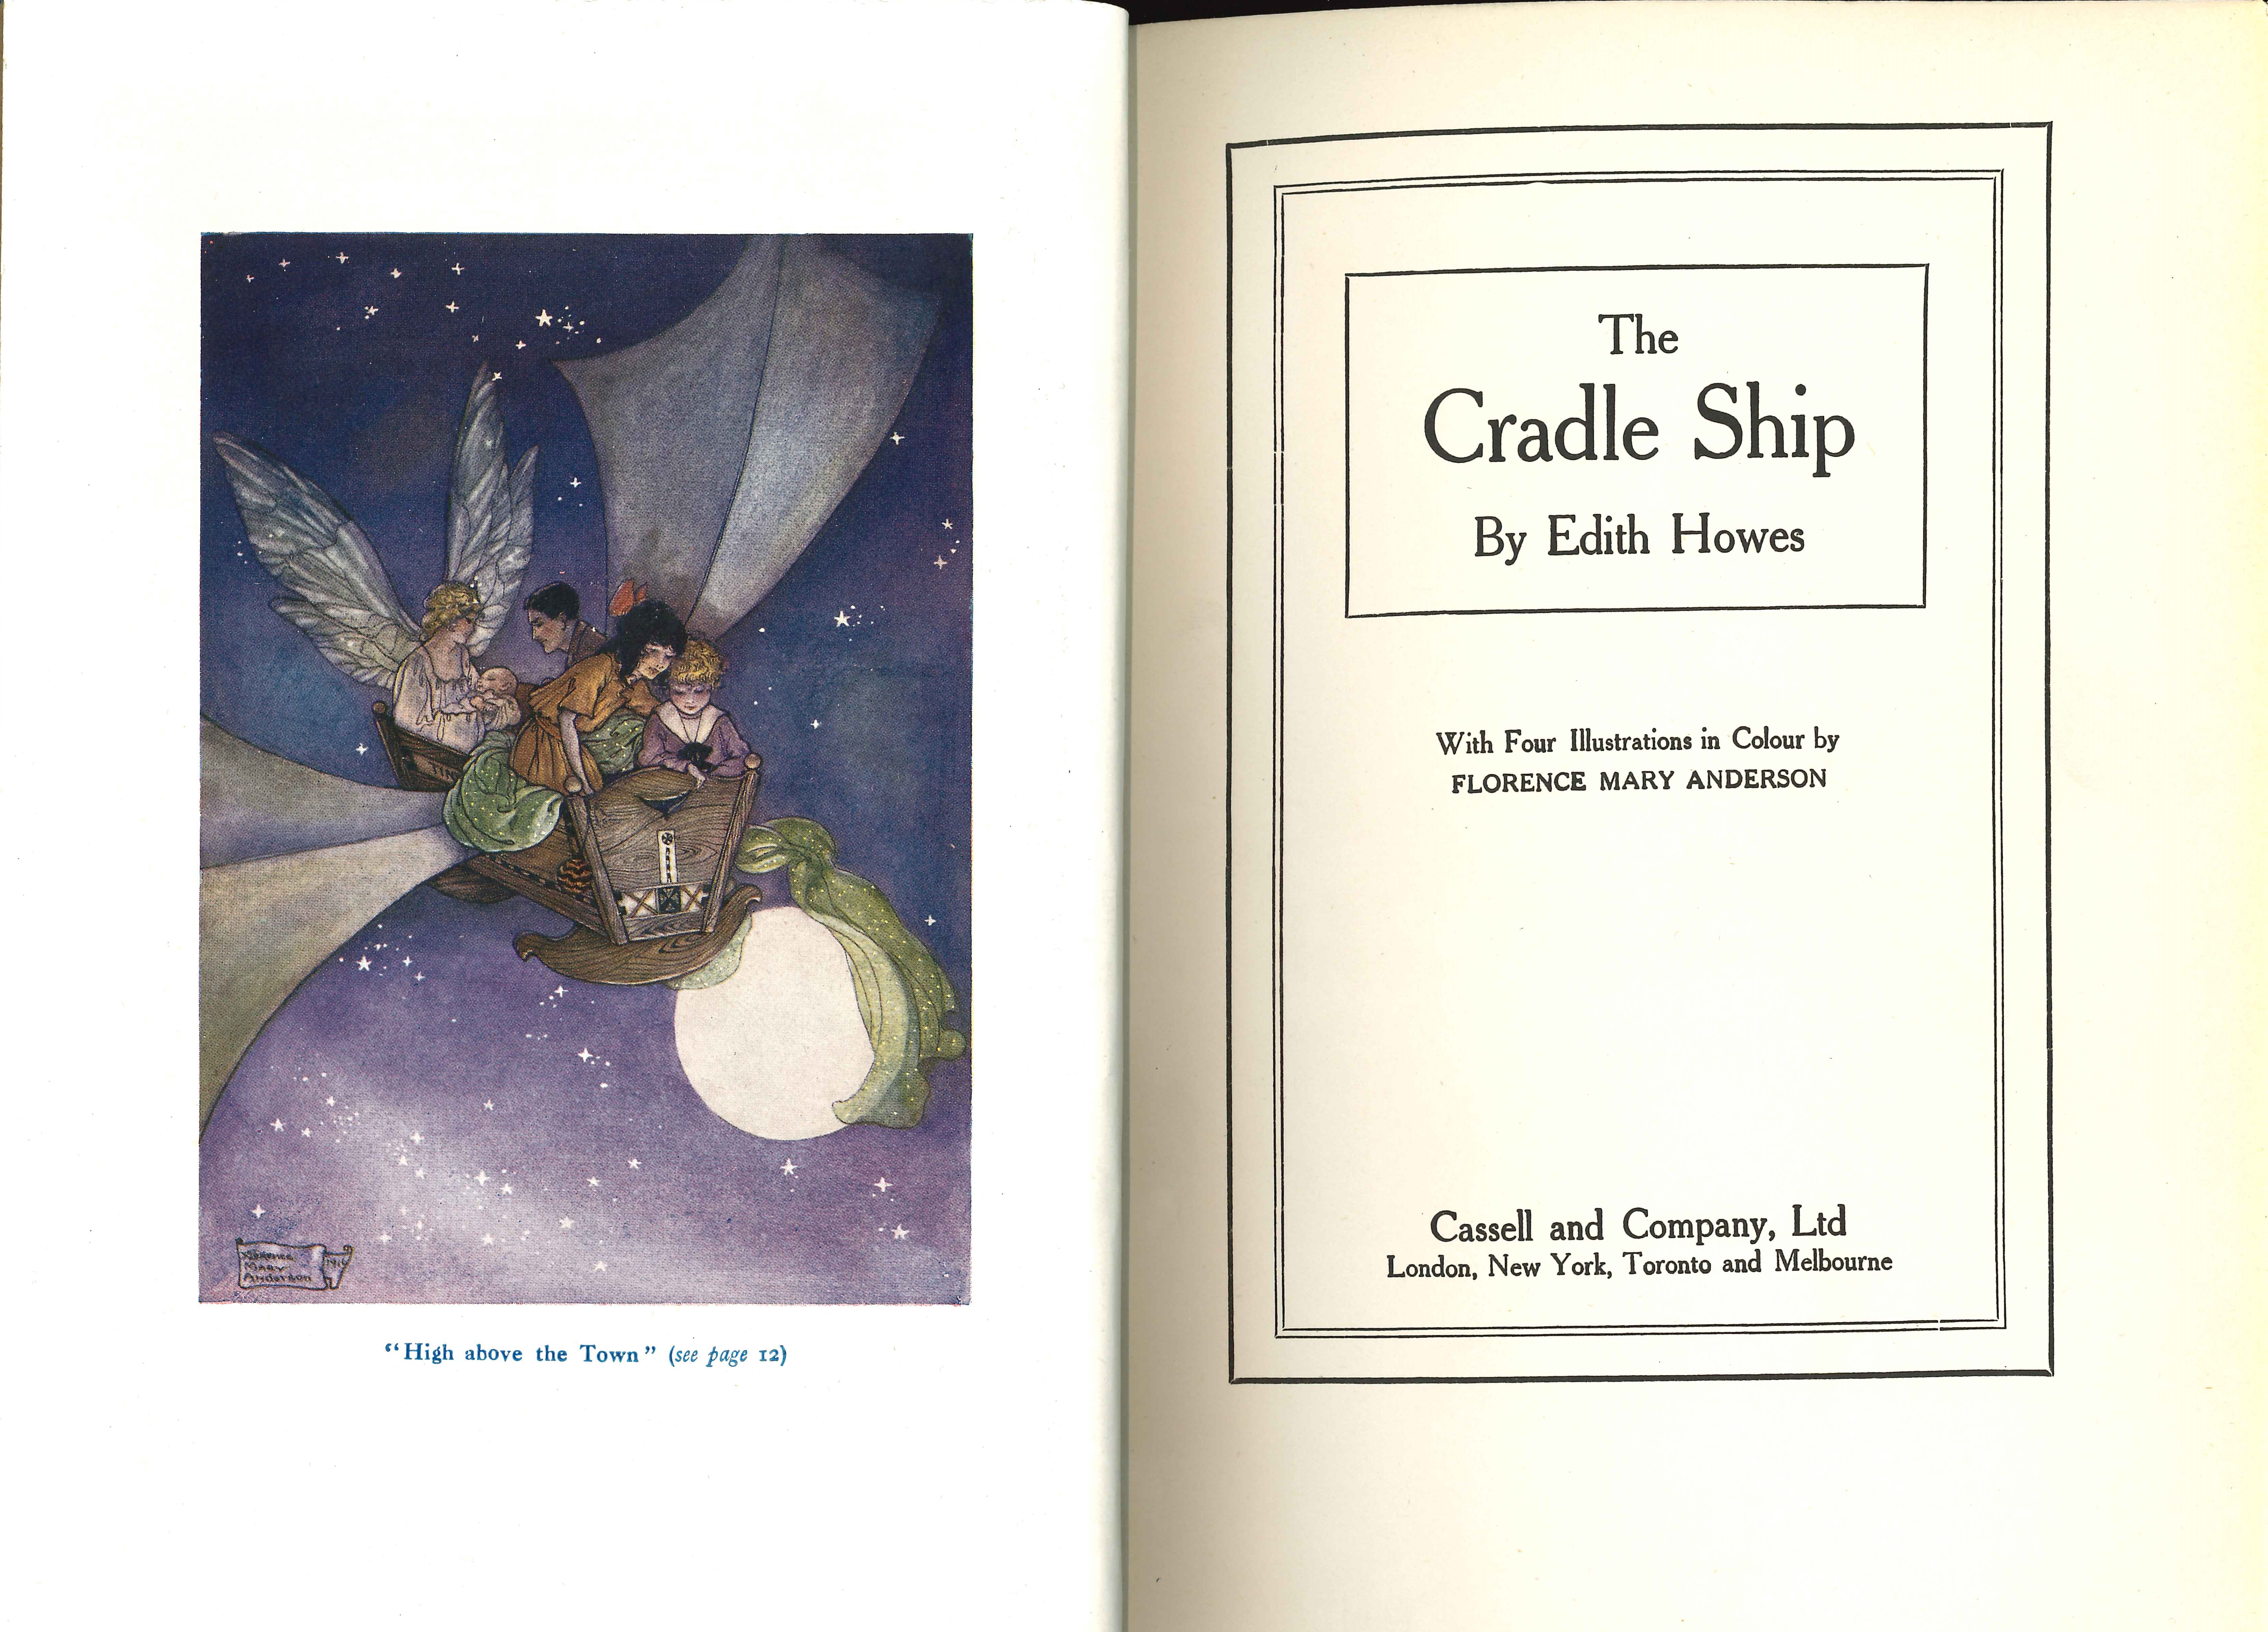 Edith Howes. The cradle ship. London: Cassell and Company, [1916?]